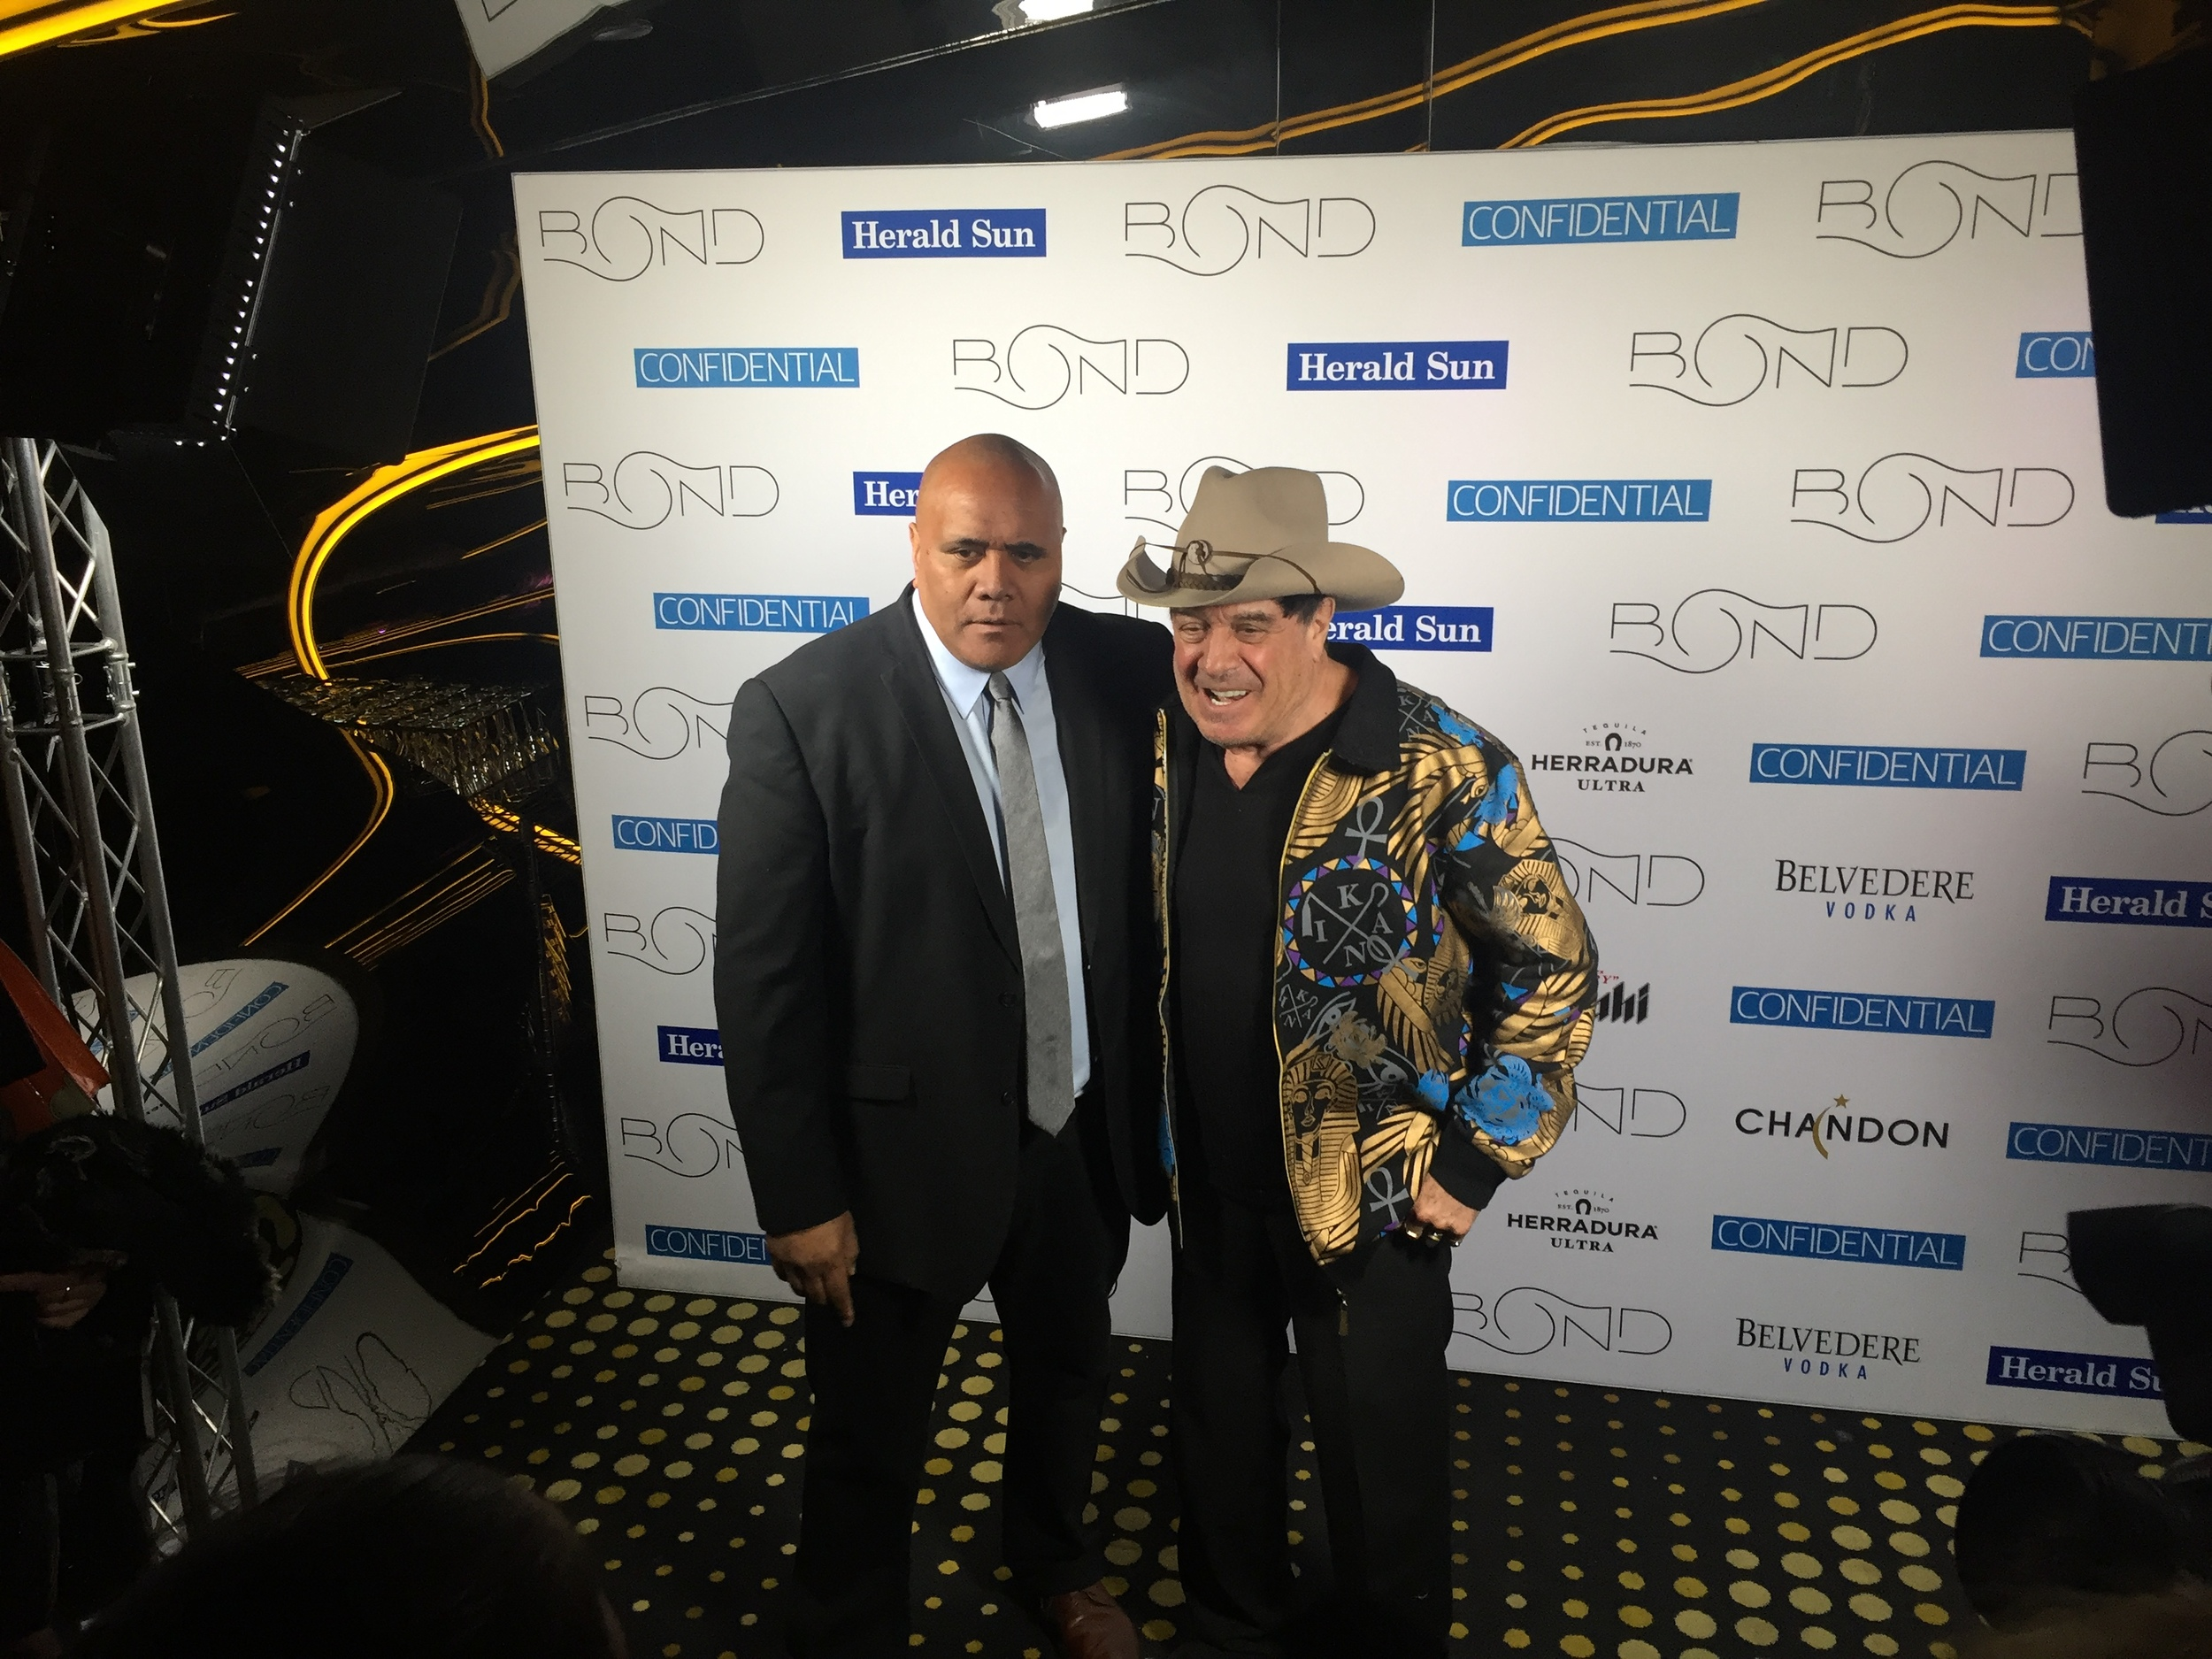 Nui with Molly Meldrum.